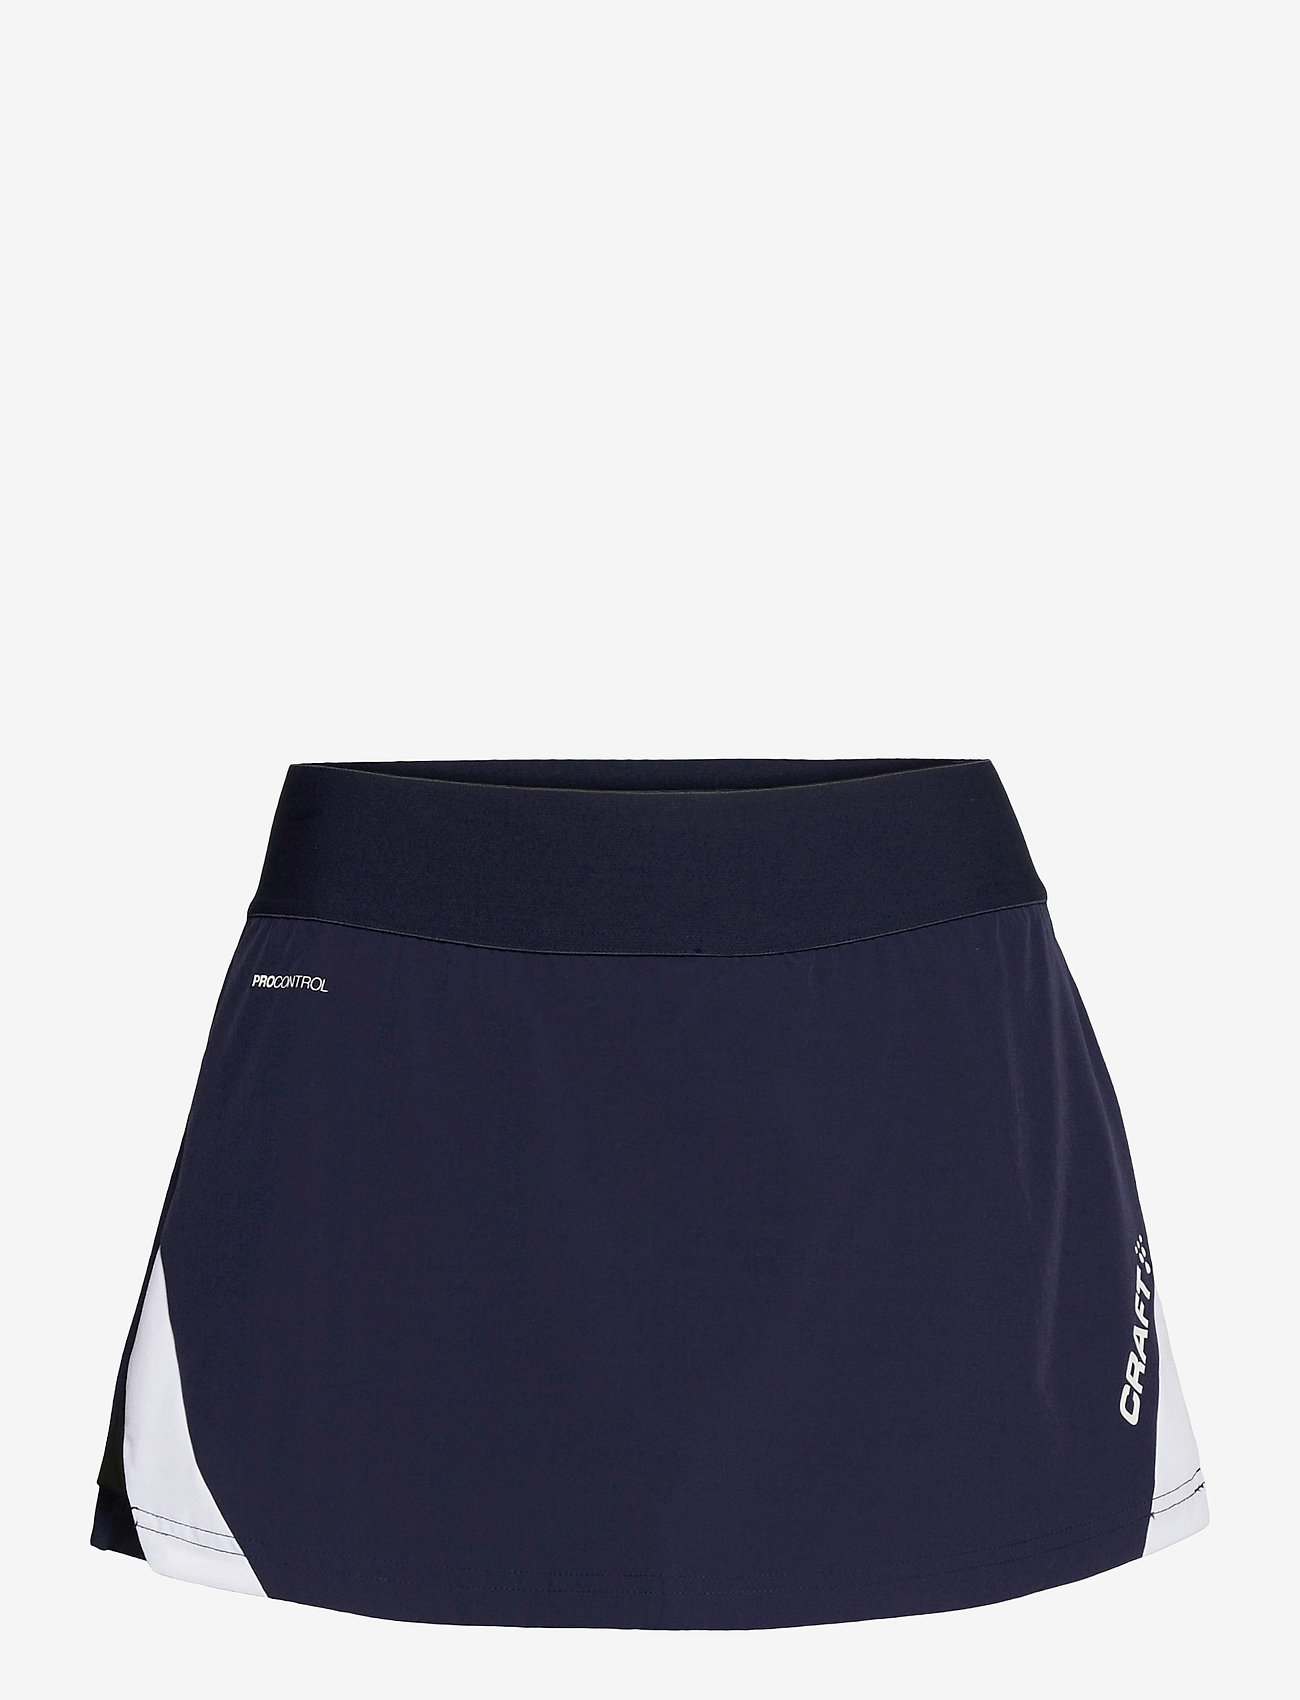 Craft - Pro Control Impact Skirt W - rokjes - navy/white - 0